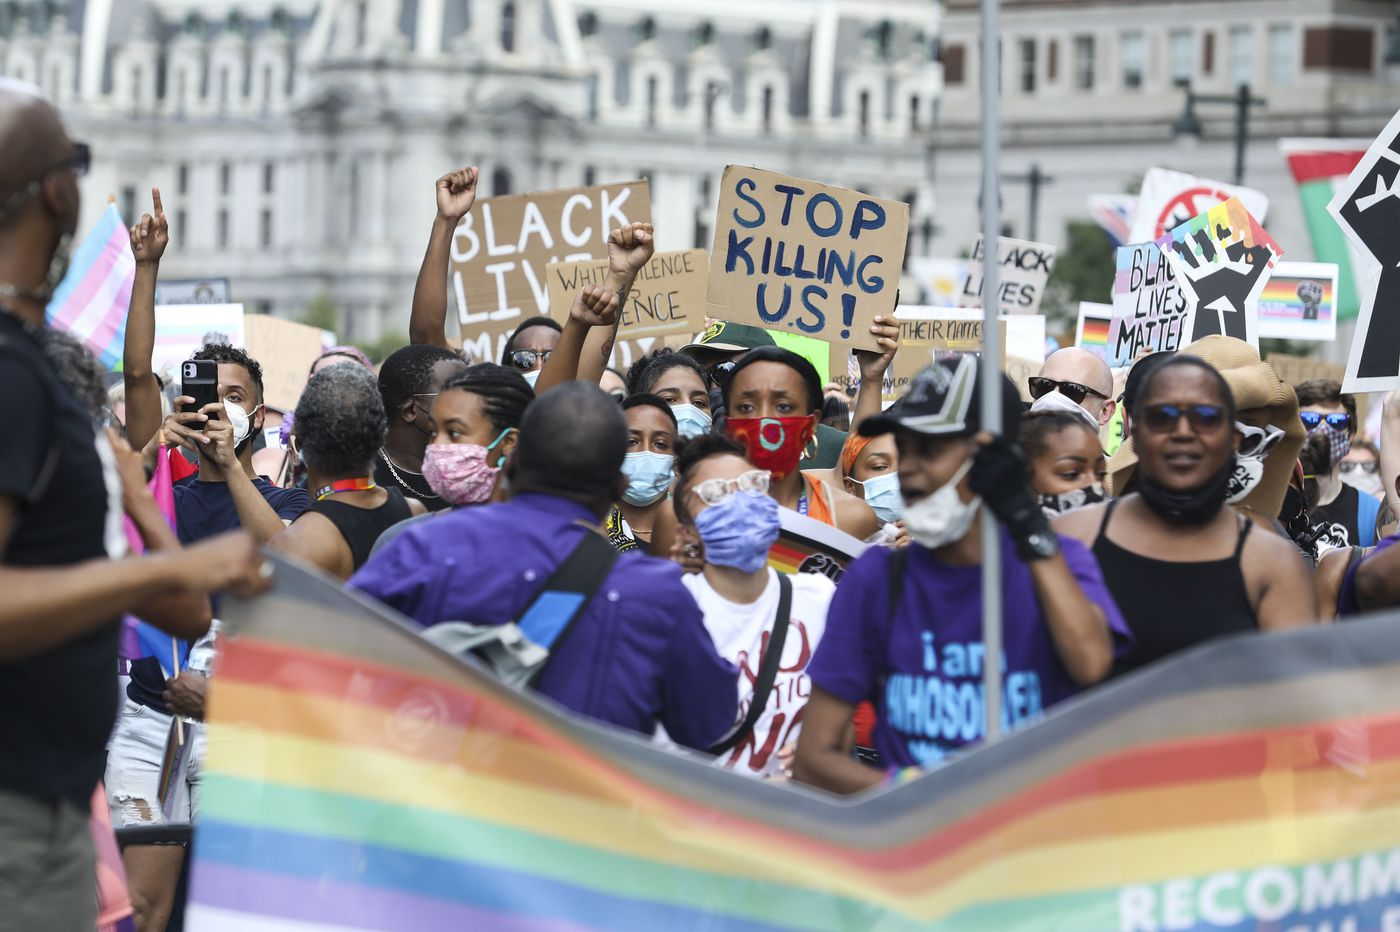 Black trans communities suffer a greater mental-health burden from discrimination and violence